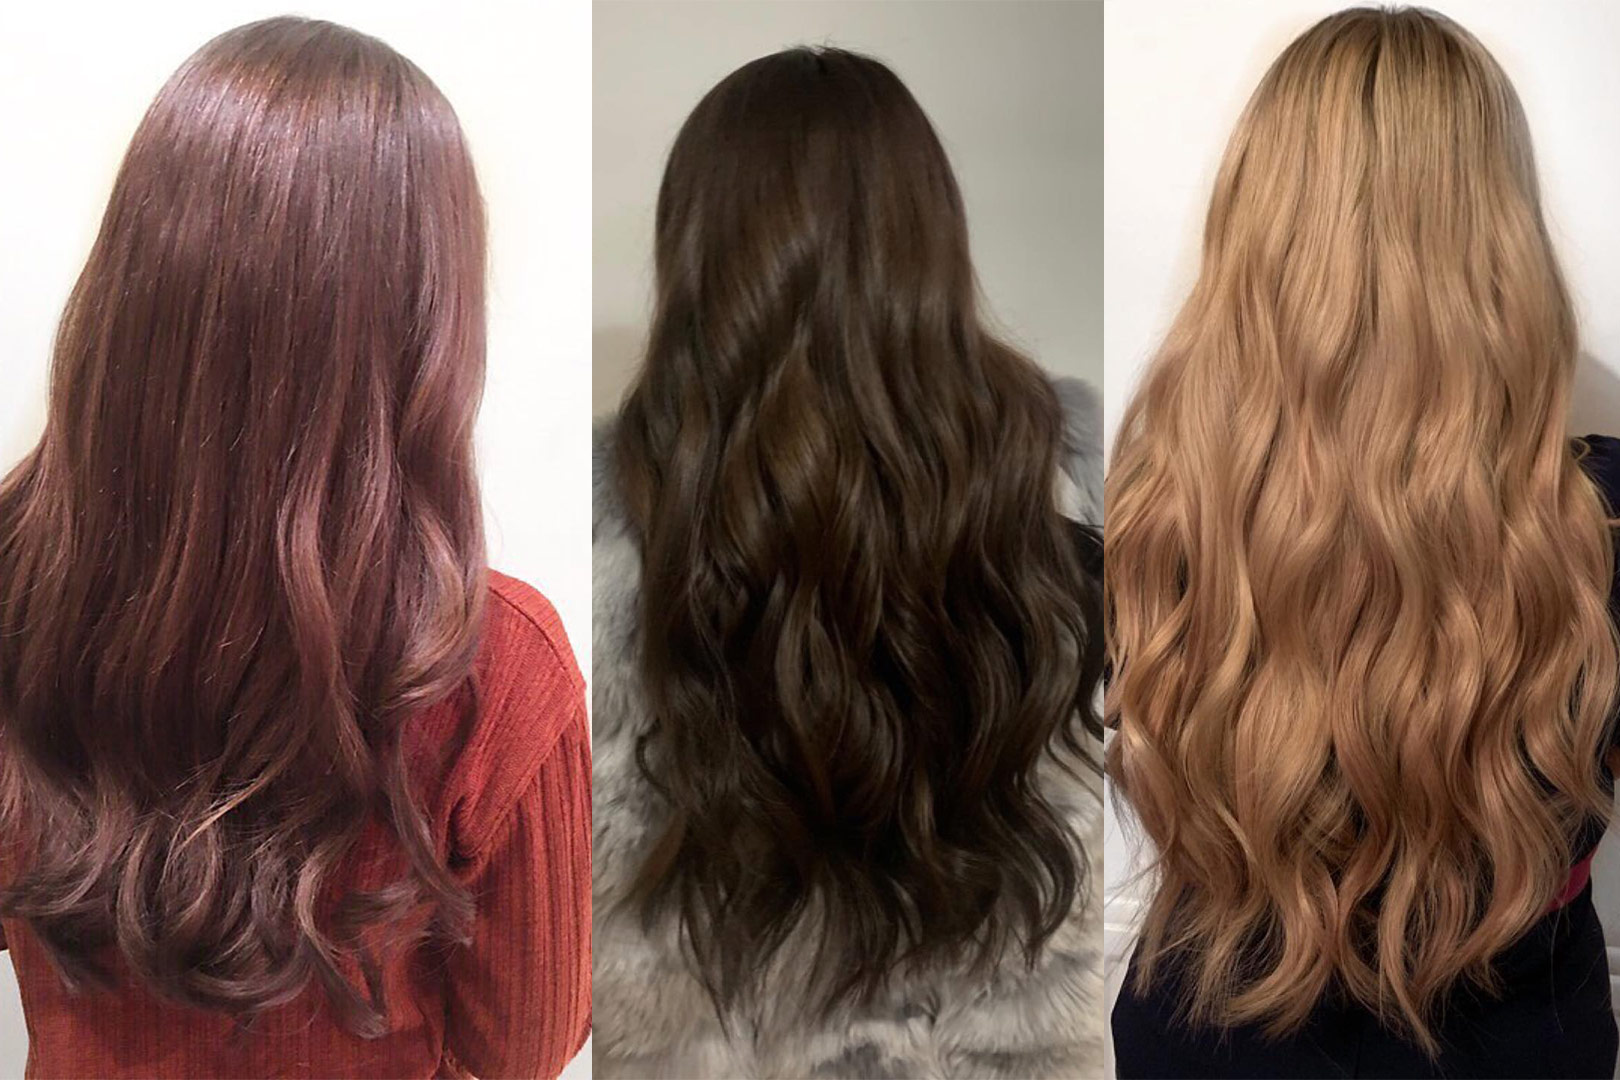 Hollywood Weave Hair Extensions